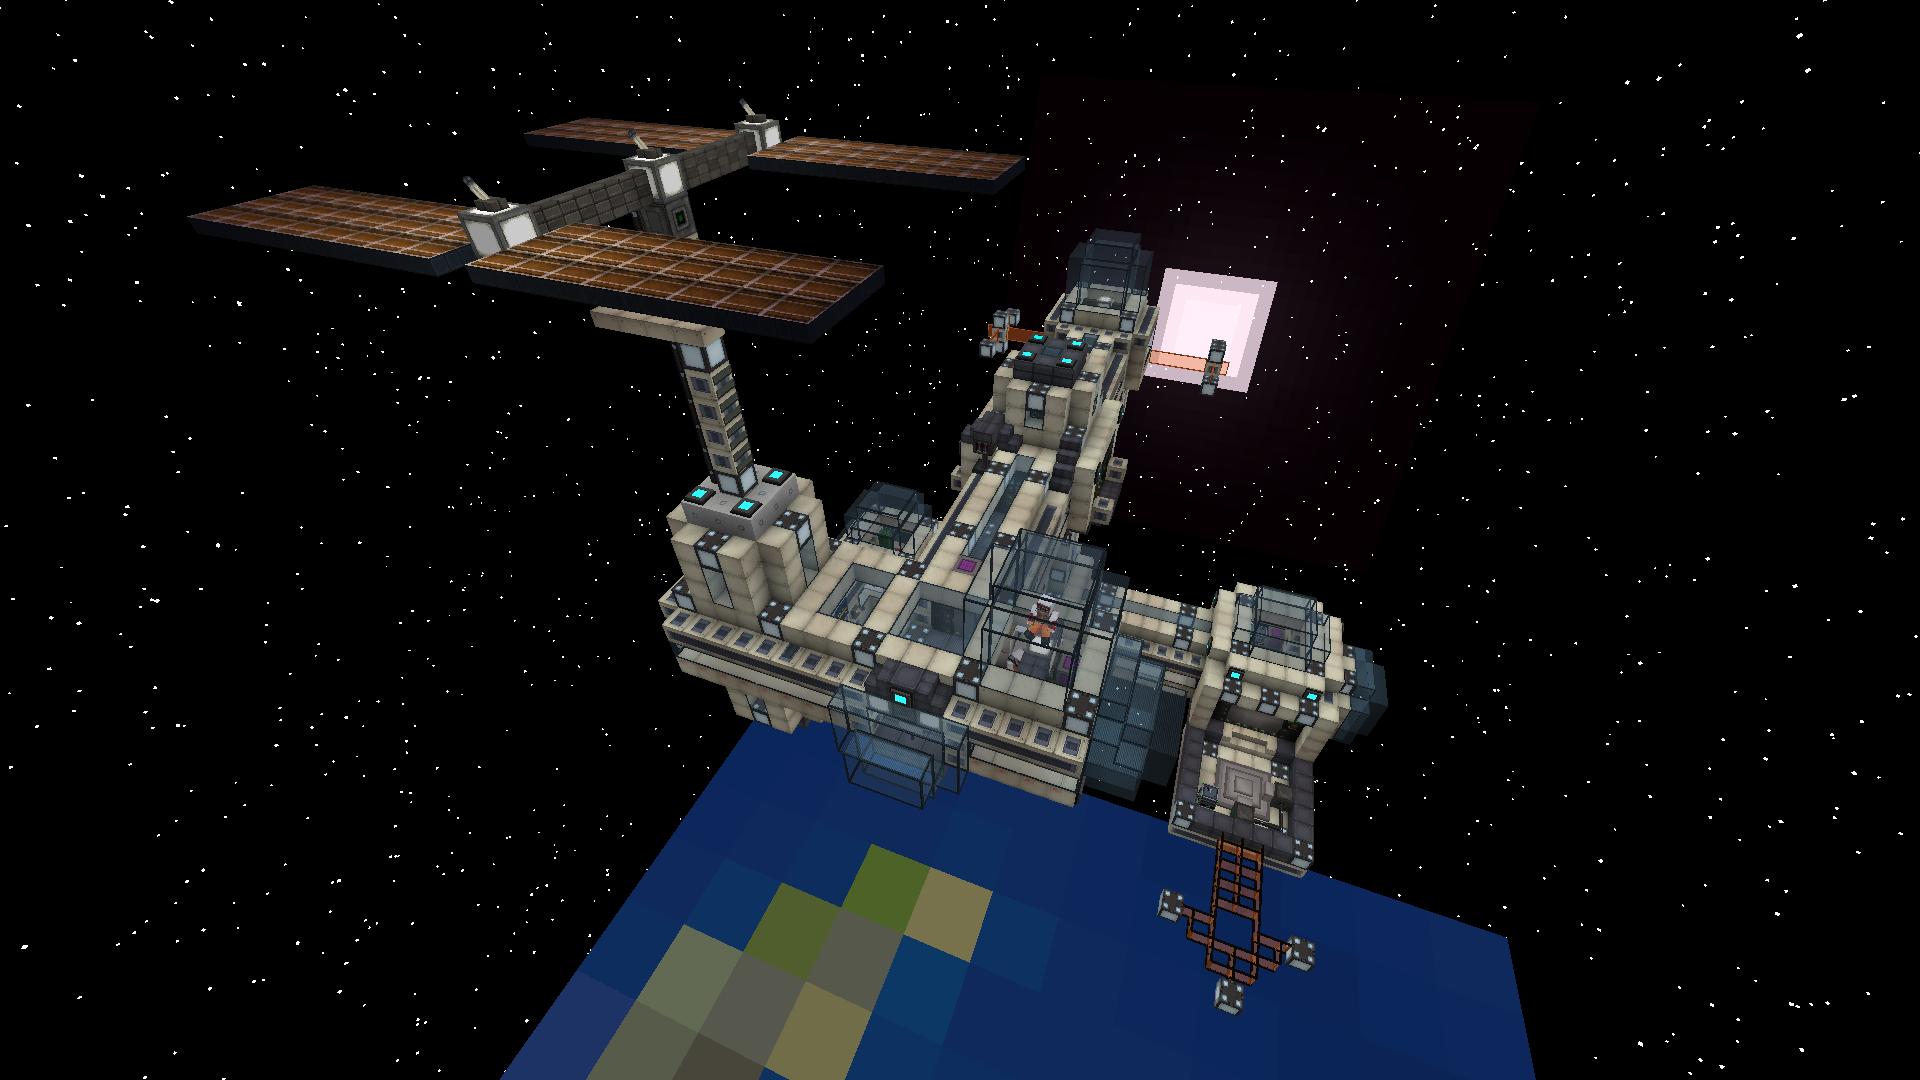 galacticraft space station - photo #7